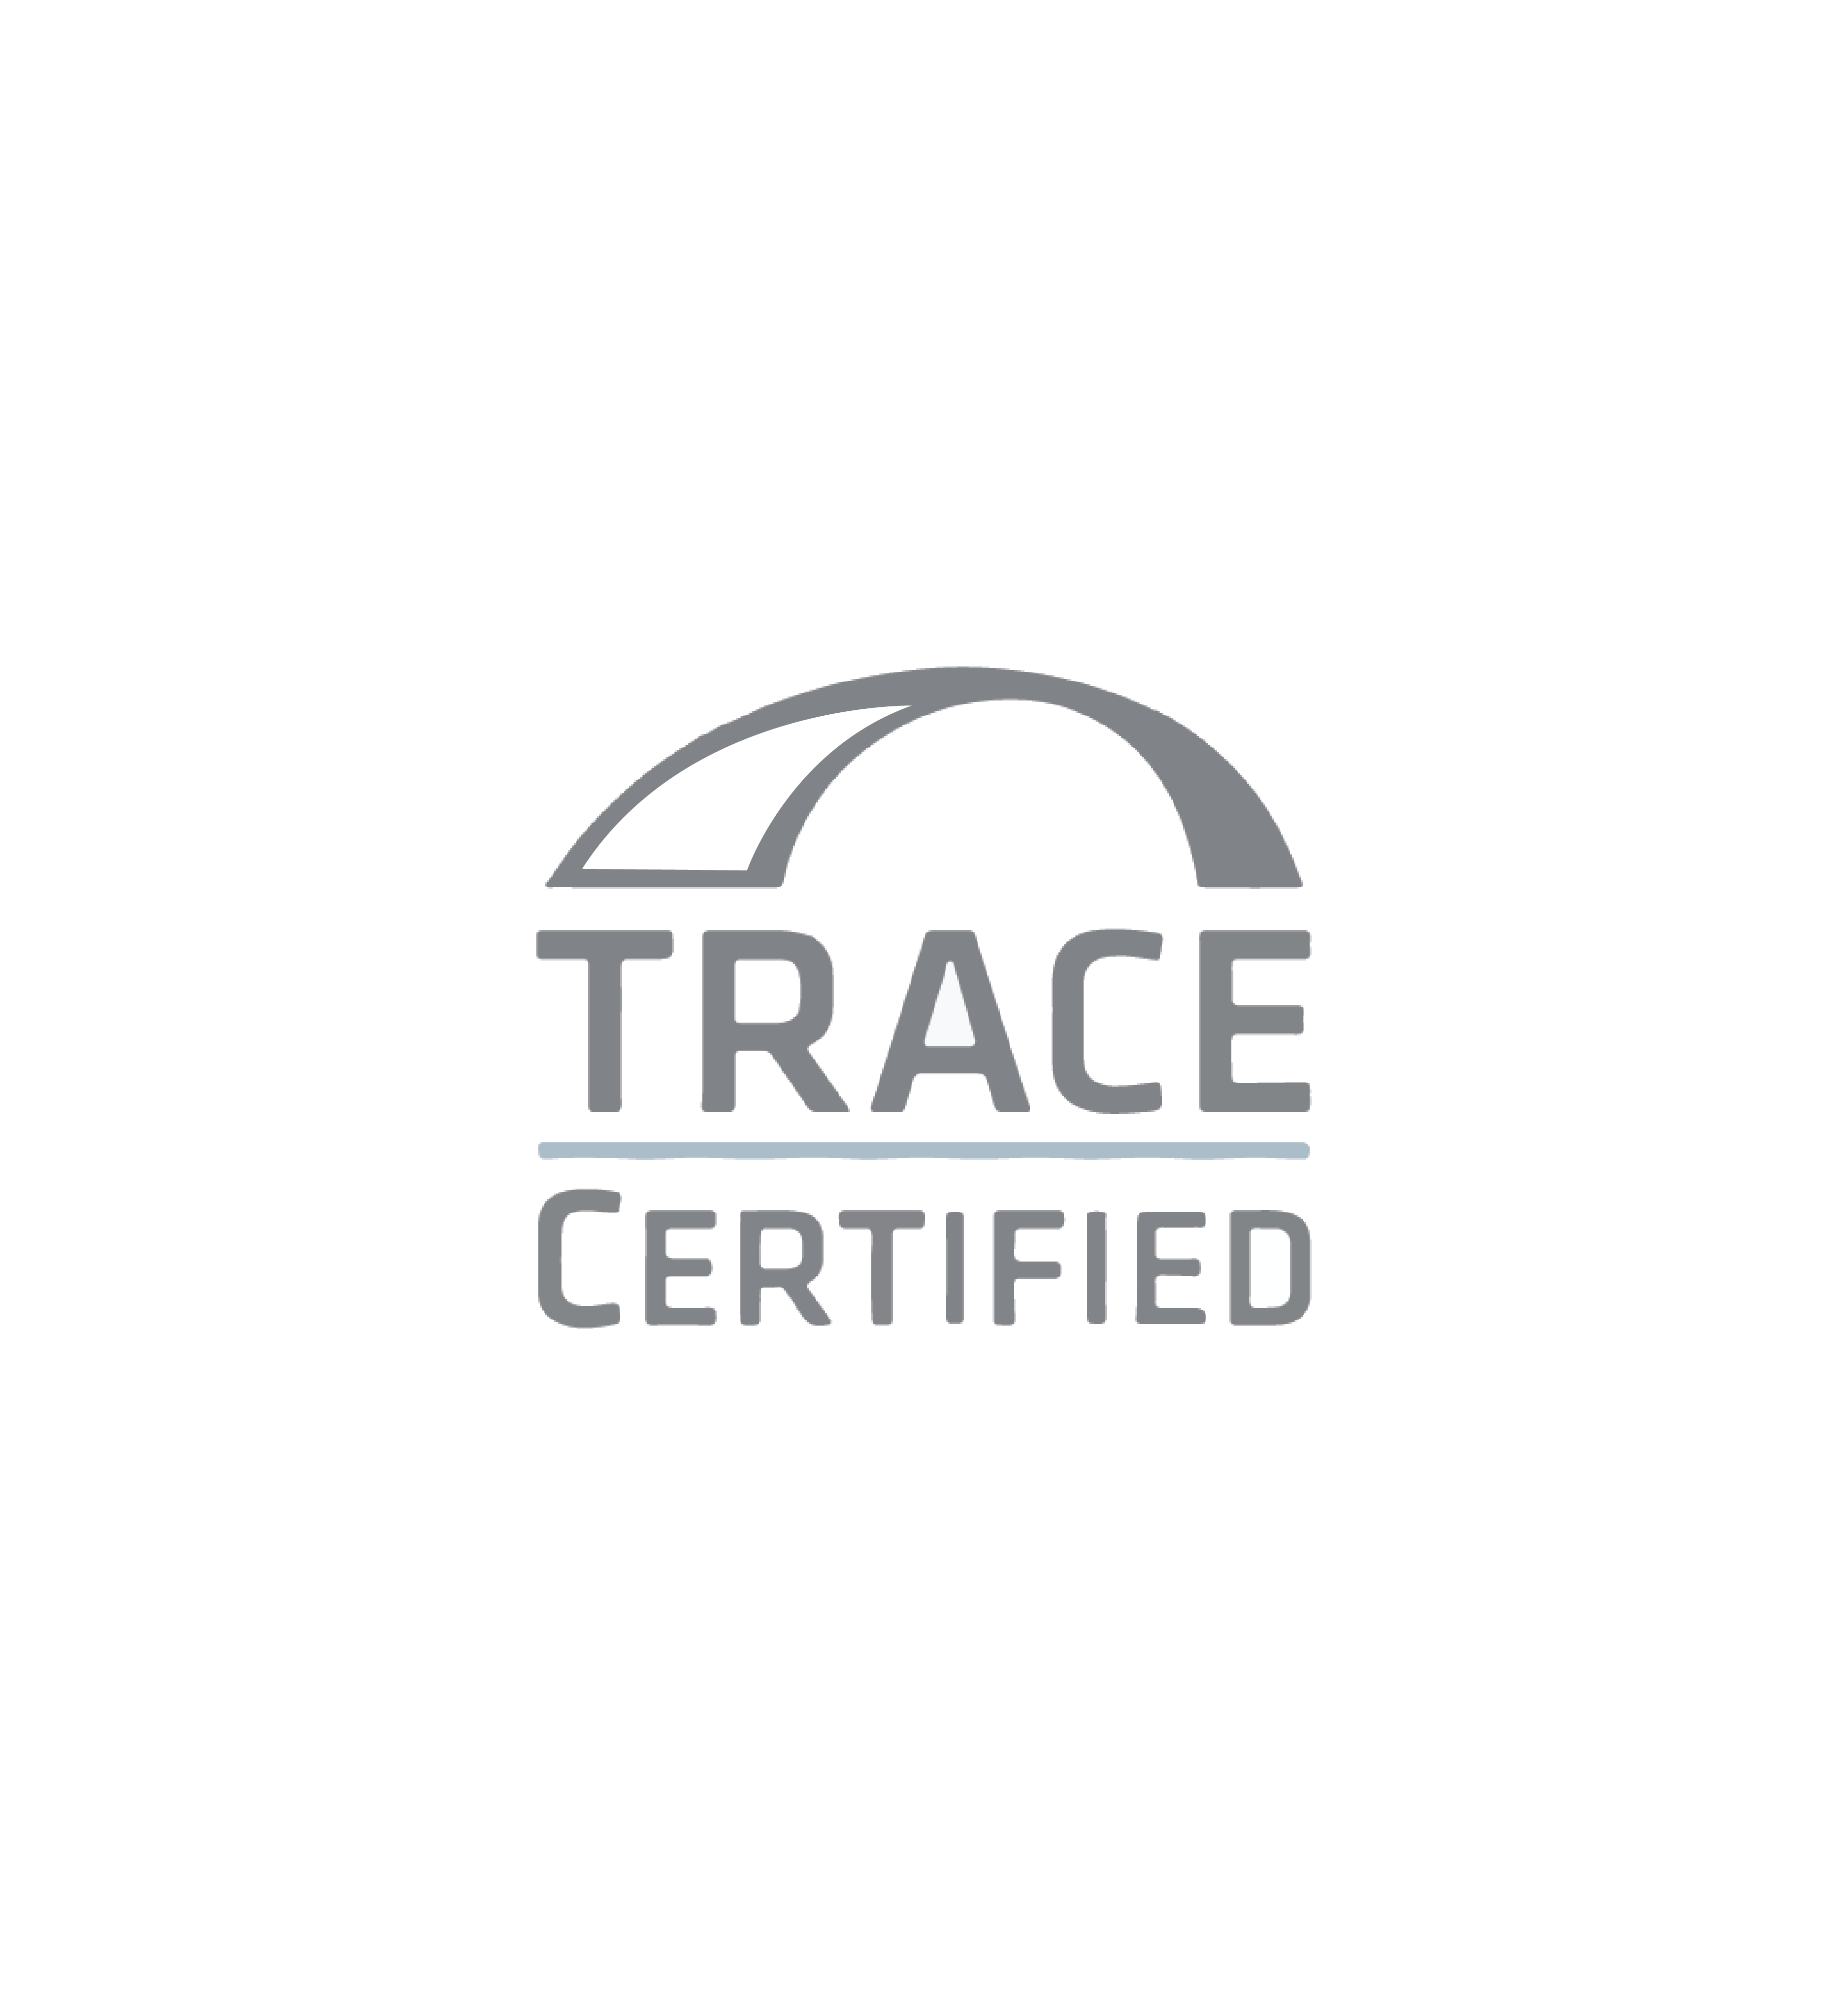 TRACE Certified